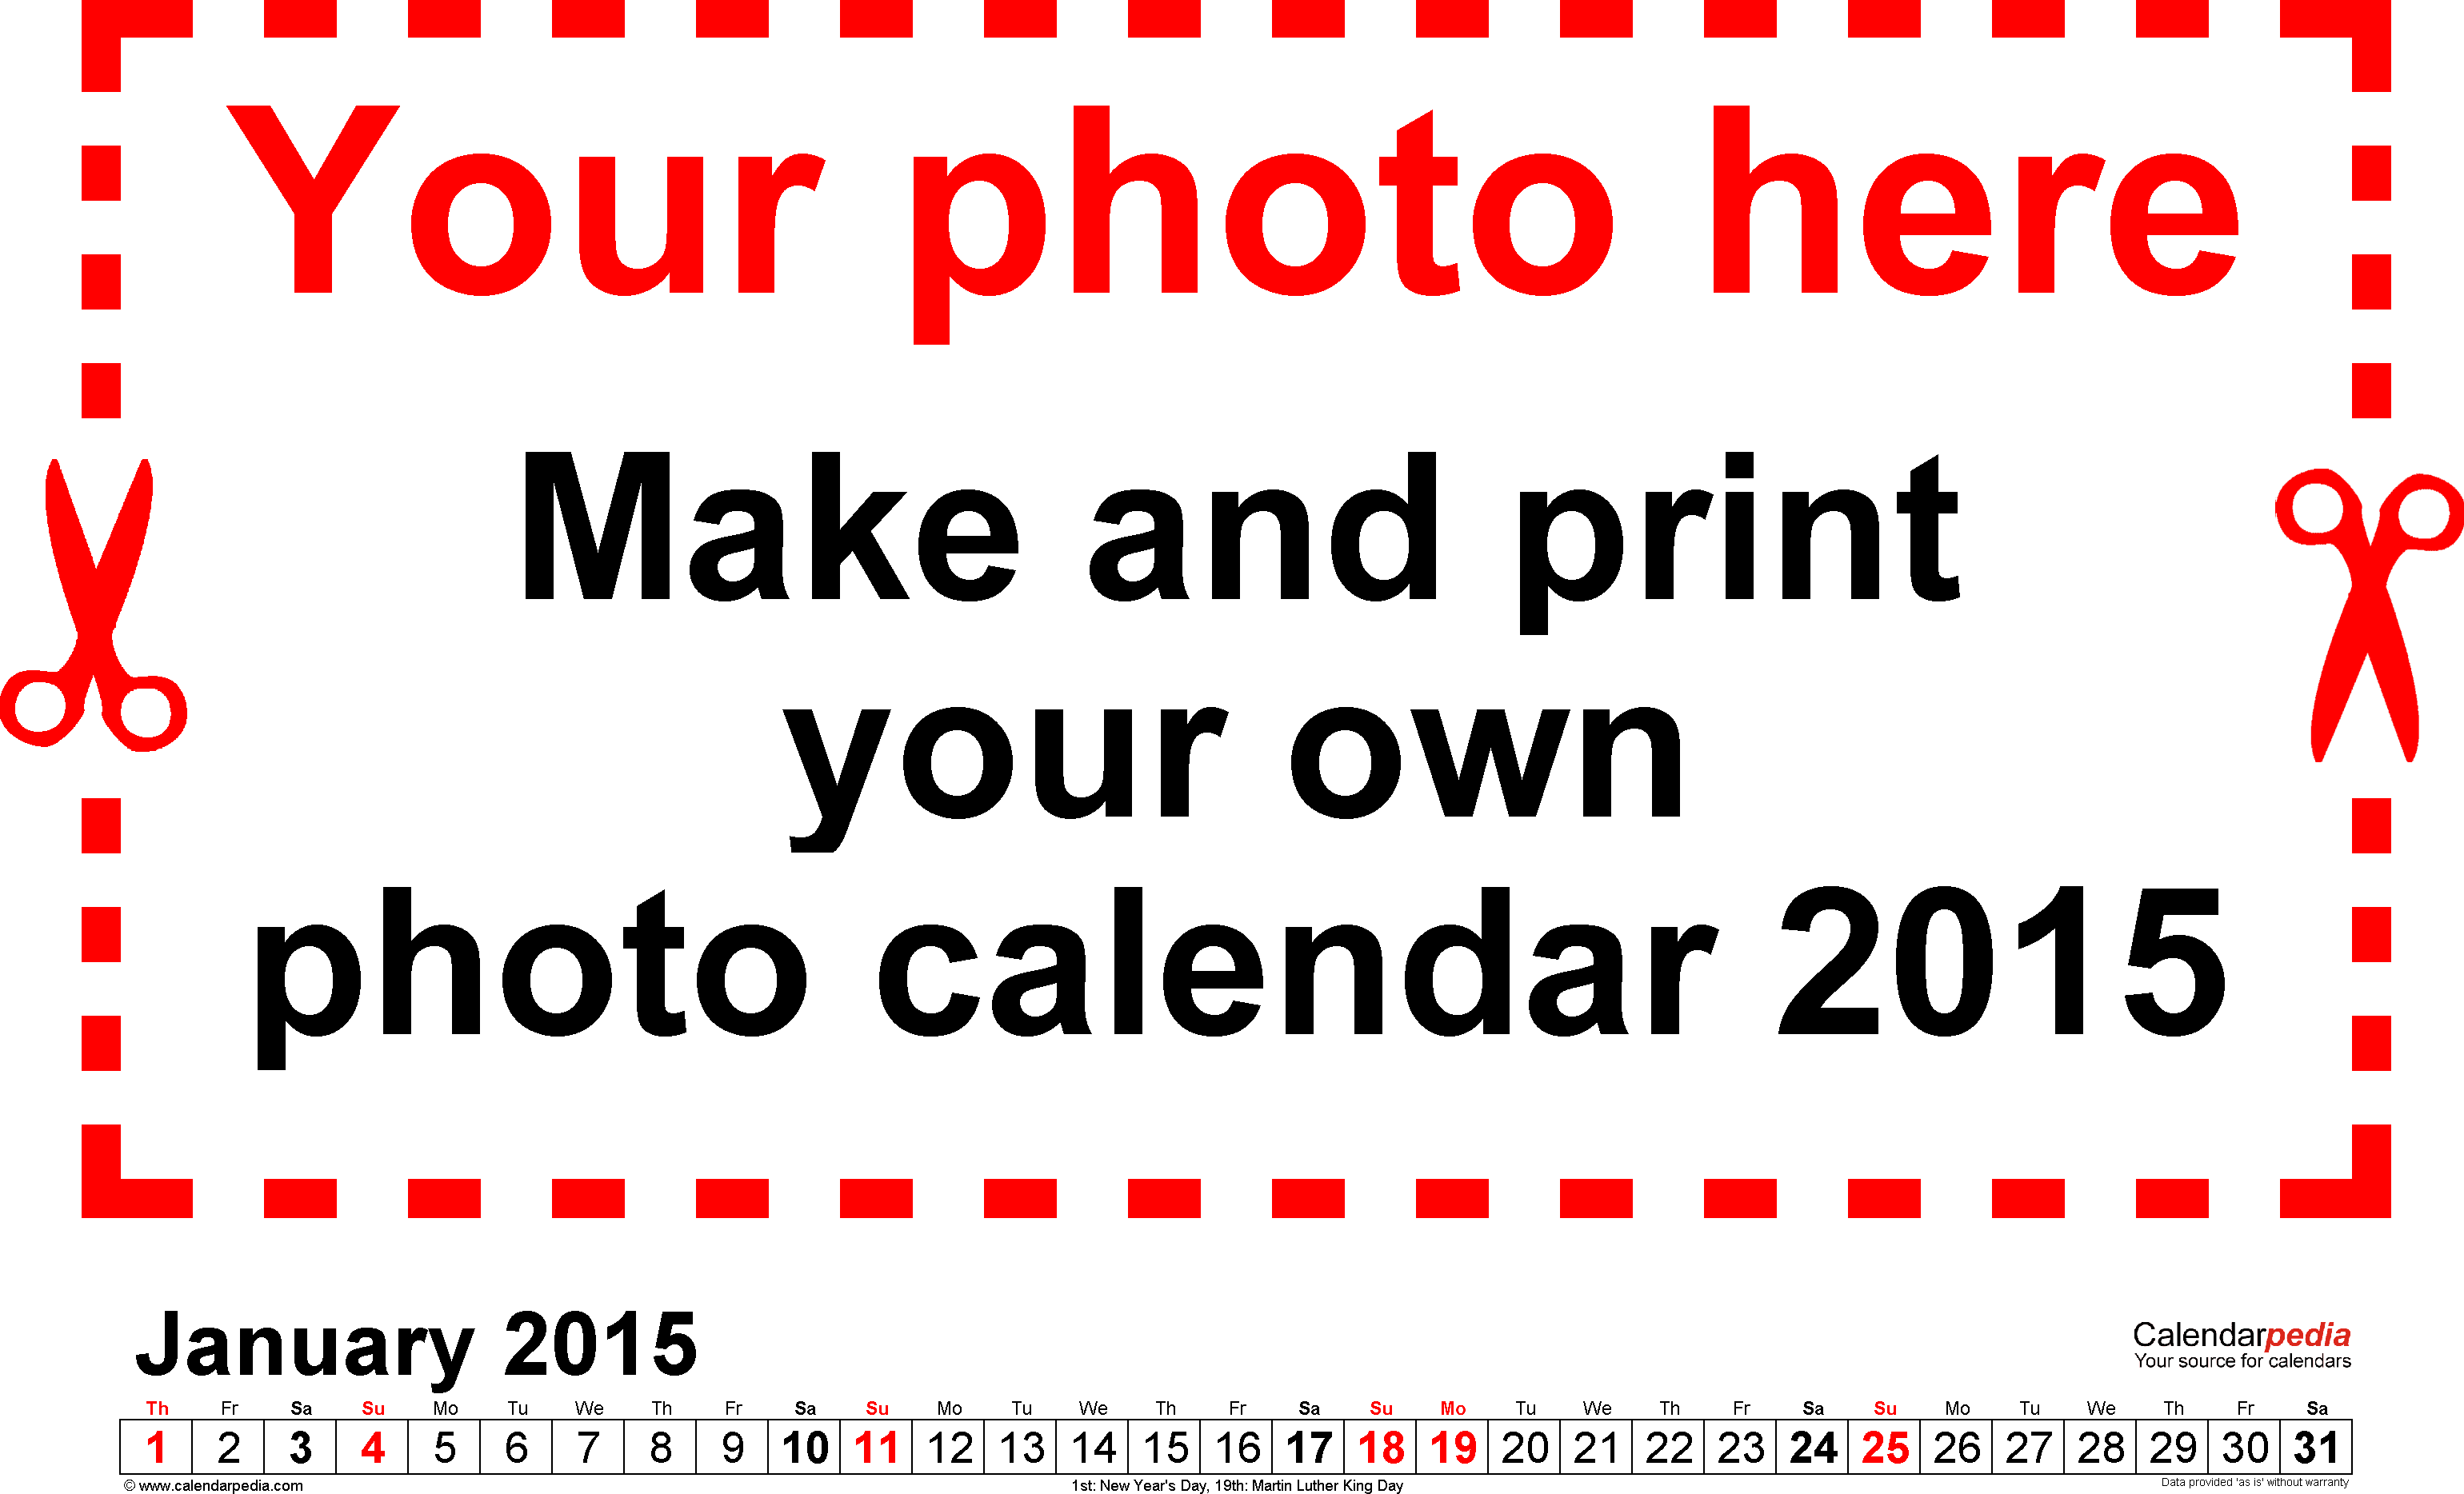 Template 5: Photo calendar 2015 for PDF, 12 pages, landscape format